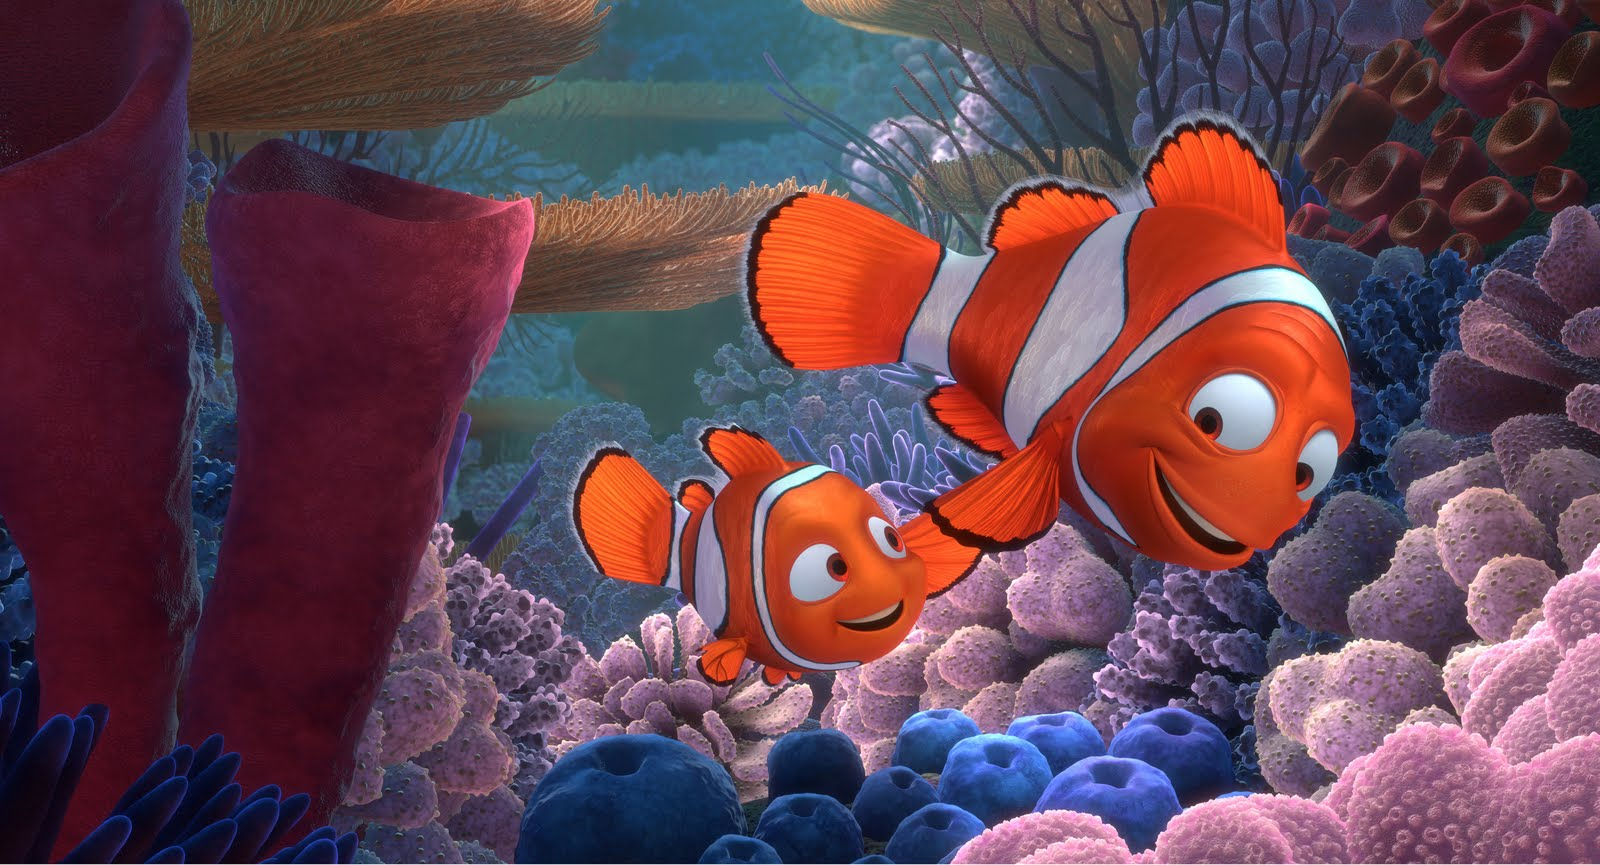 Finding Nemo 2 Release Date Us | Finding Dory